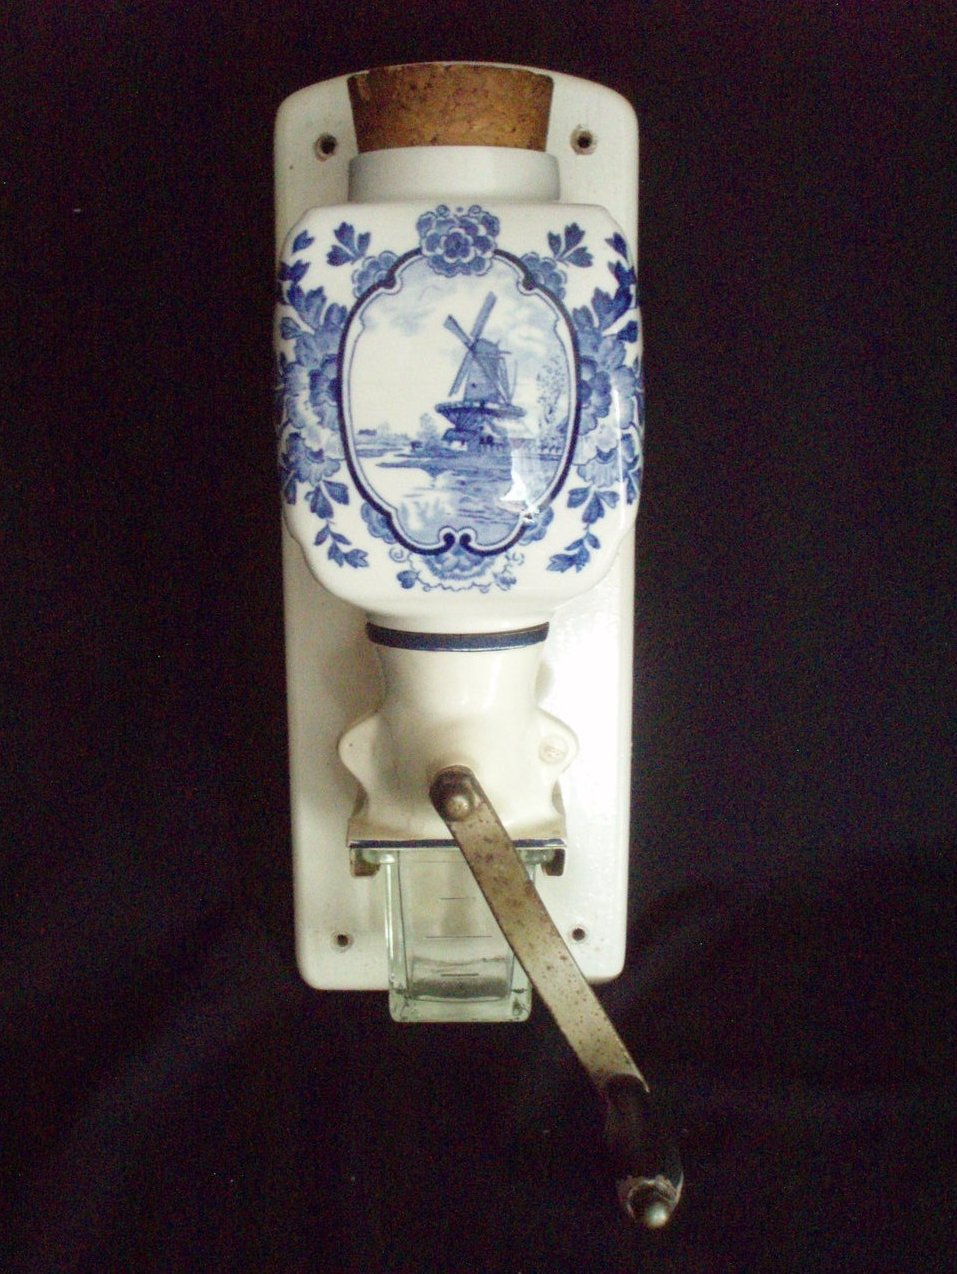 Vintage Blue De Ve Delft Coffee Mill Grinder wall mount